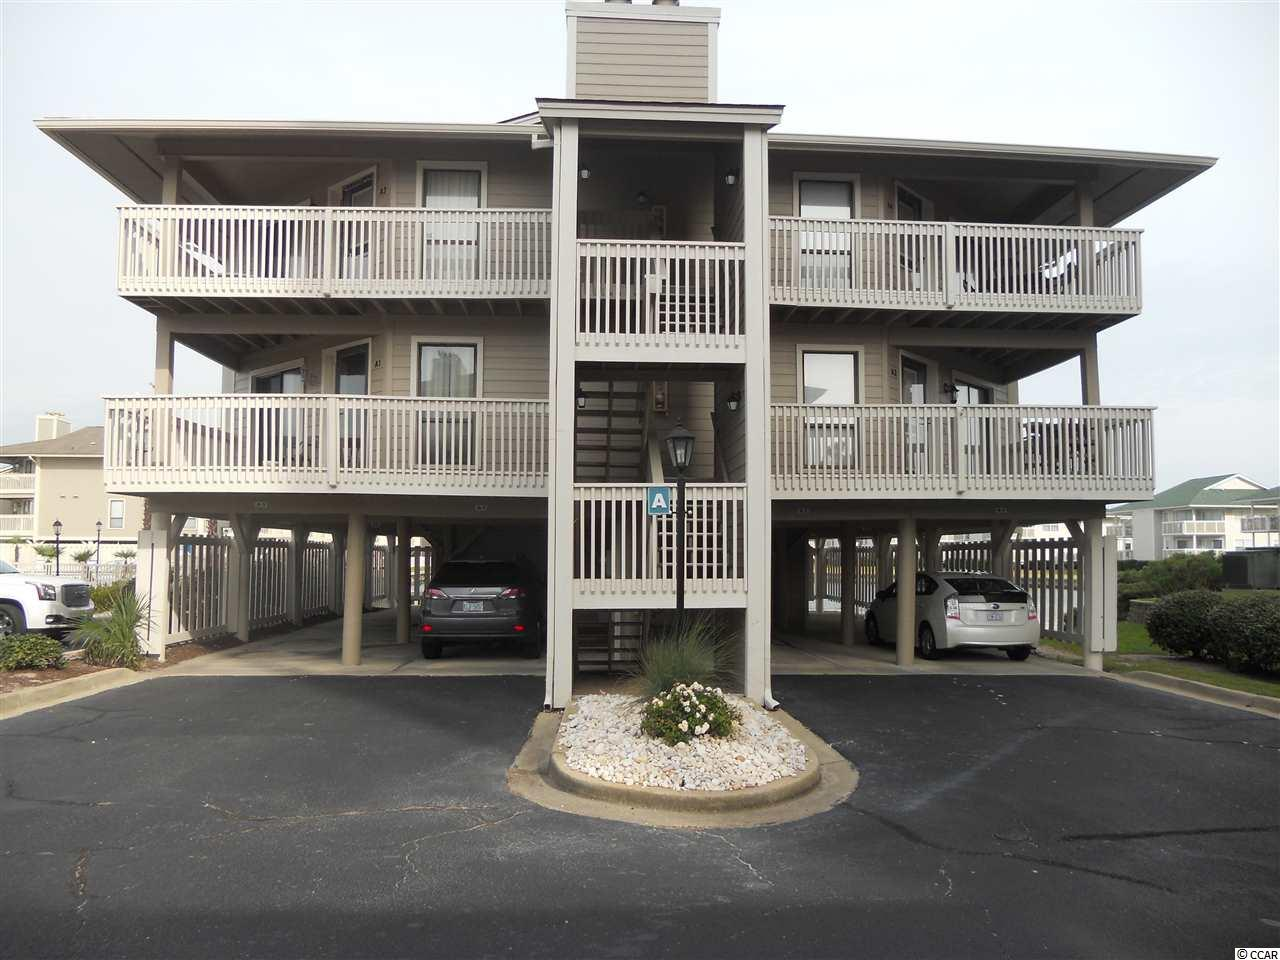 Must see! This 3 bed/2 bath unit, overlooking a beautiful lake and pool, is just steps away from the beautiful ocean and conveniently located close to all that North Myrtle Beach and Cherry Grove have to offer. All measurements are approximate and must be verified by the buyer.